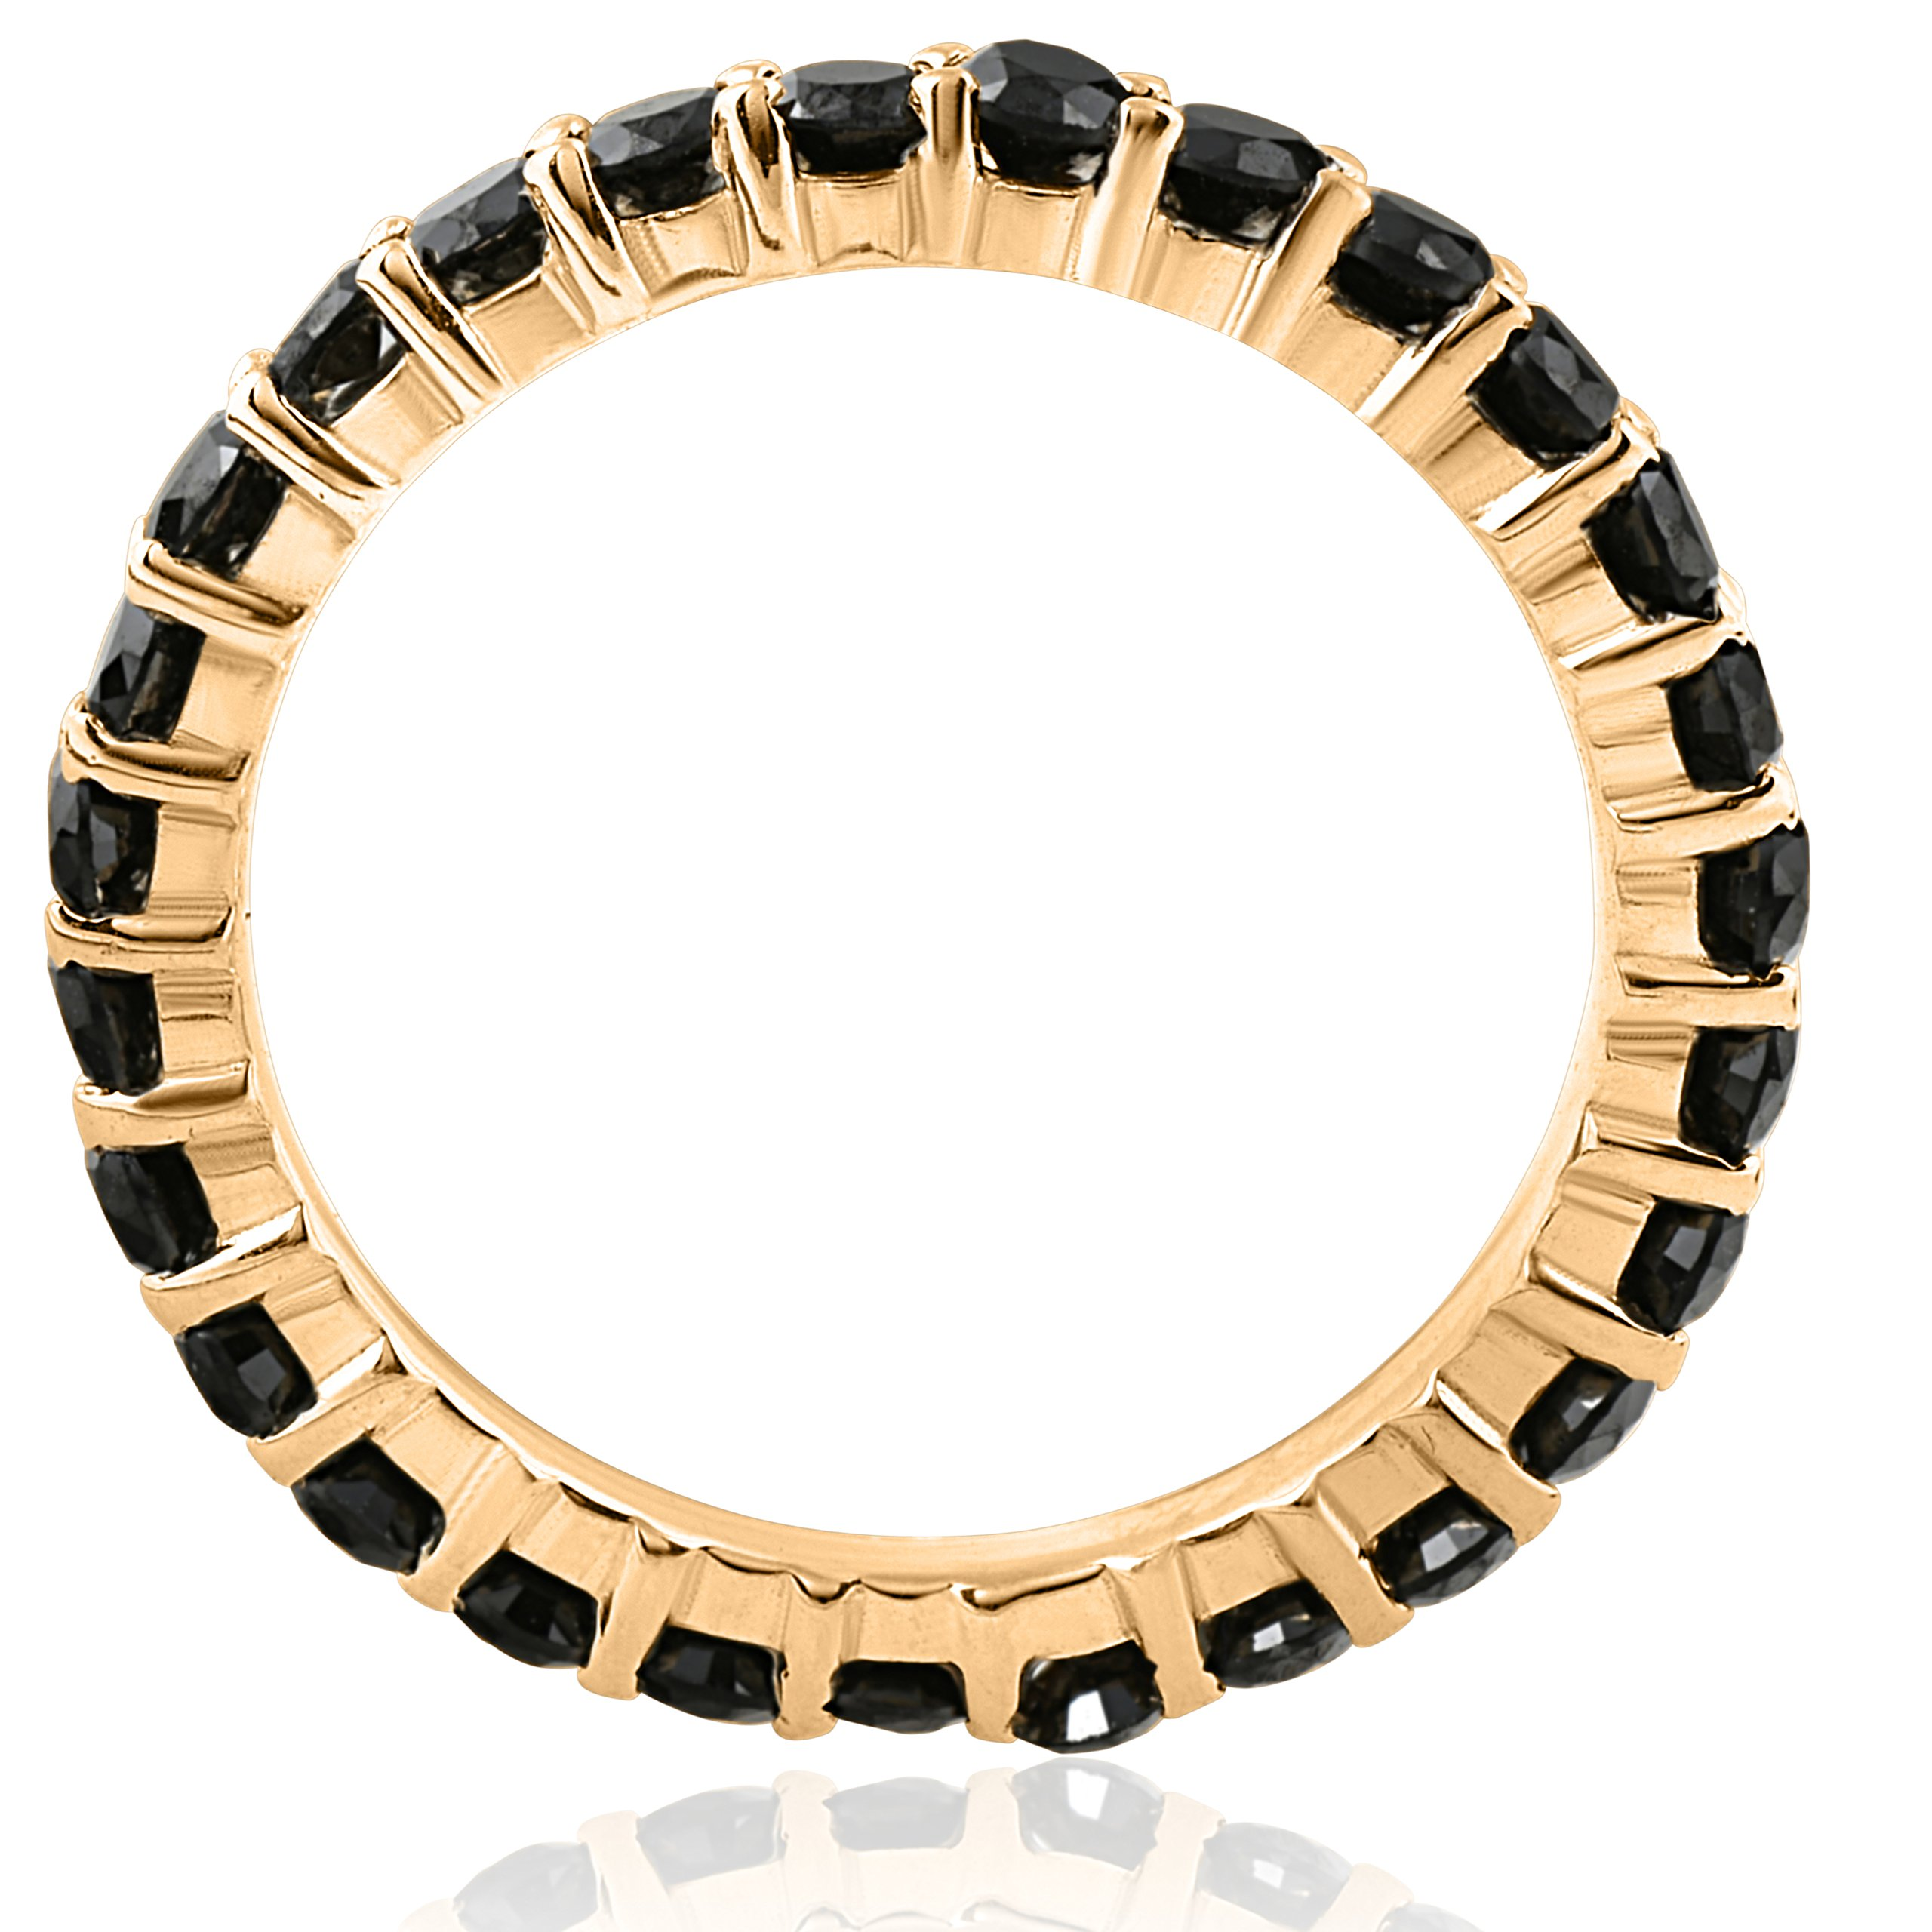 1 1/2ct Black Diamond Eternity Ring 14k Yellow Gold Womens Stackable Band - Size 7 by P3 POMPEII3 (Image #2)